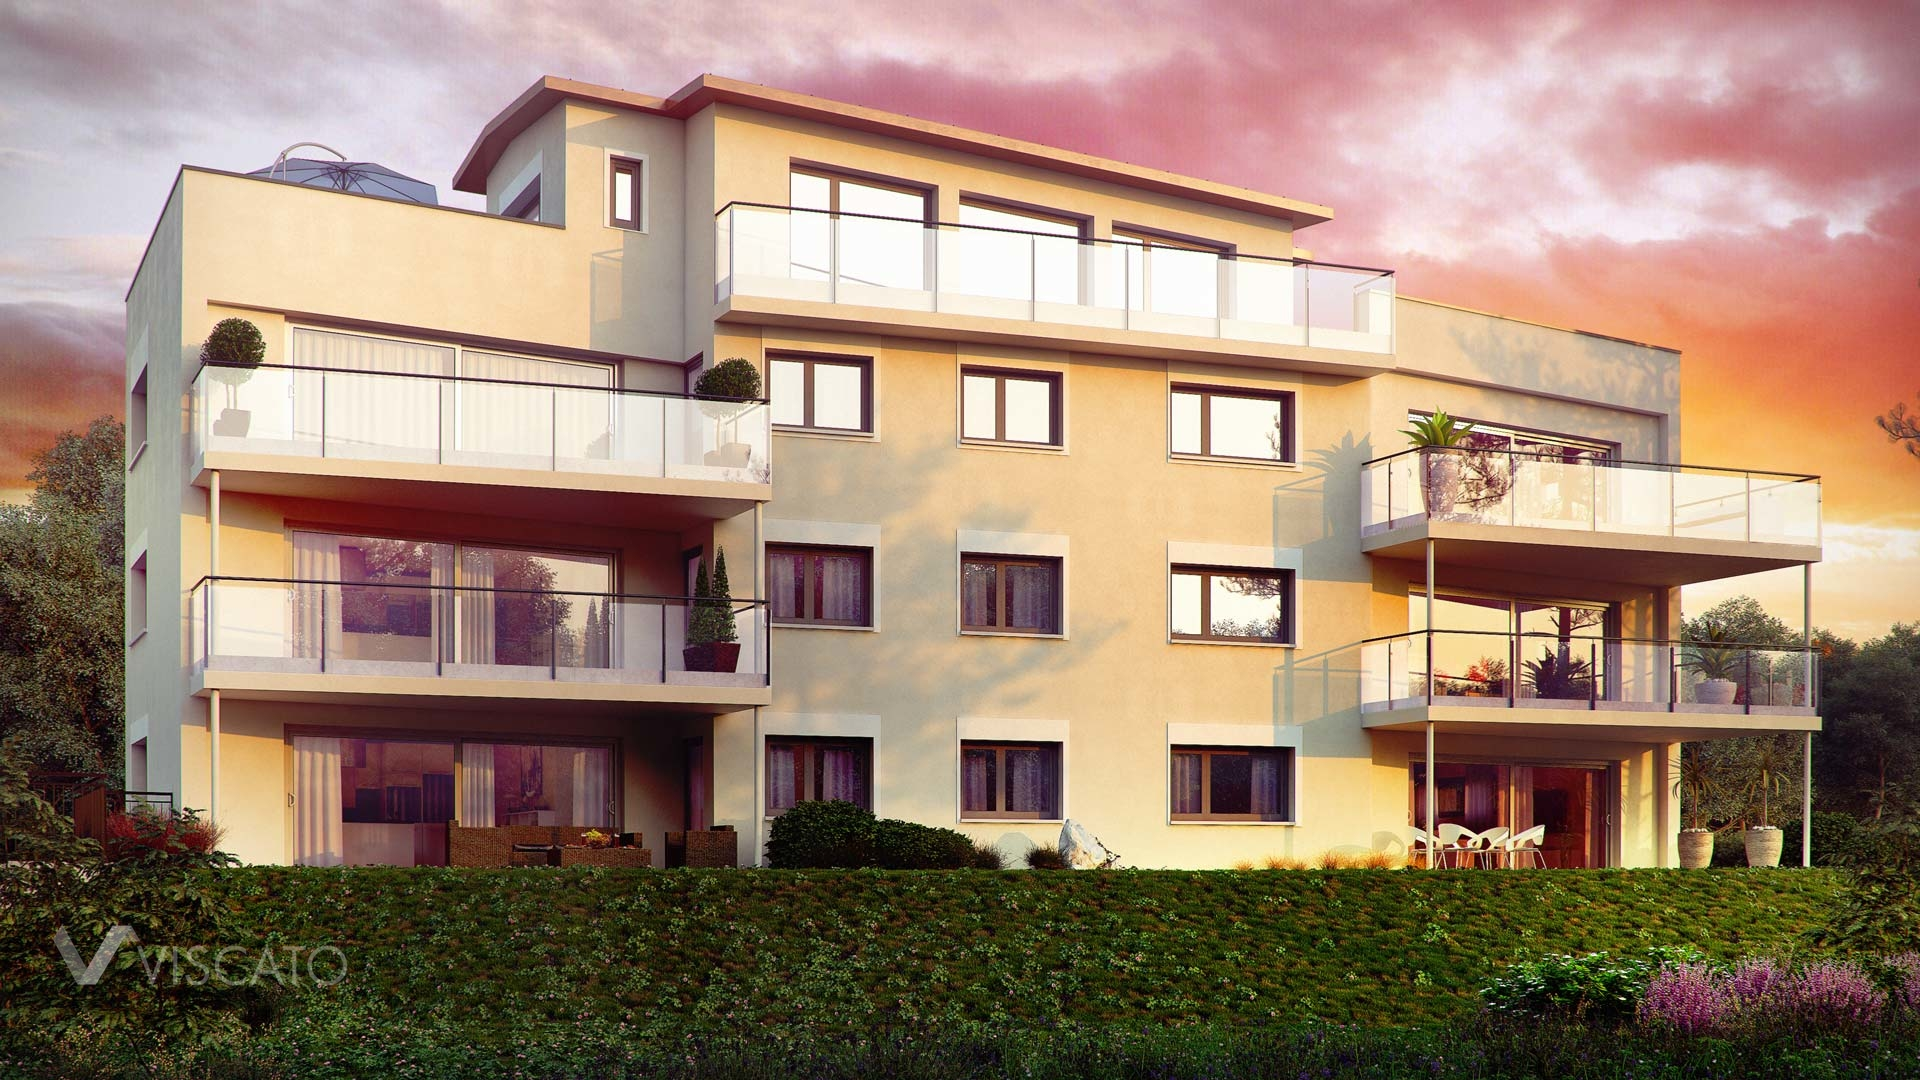 Sunset exterior visualization of multi family real estate - view from garden side